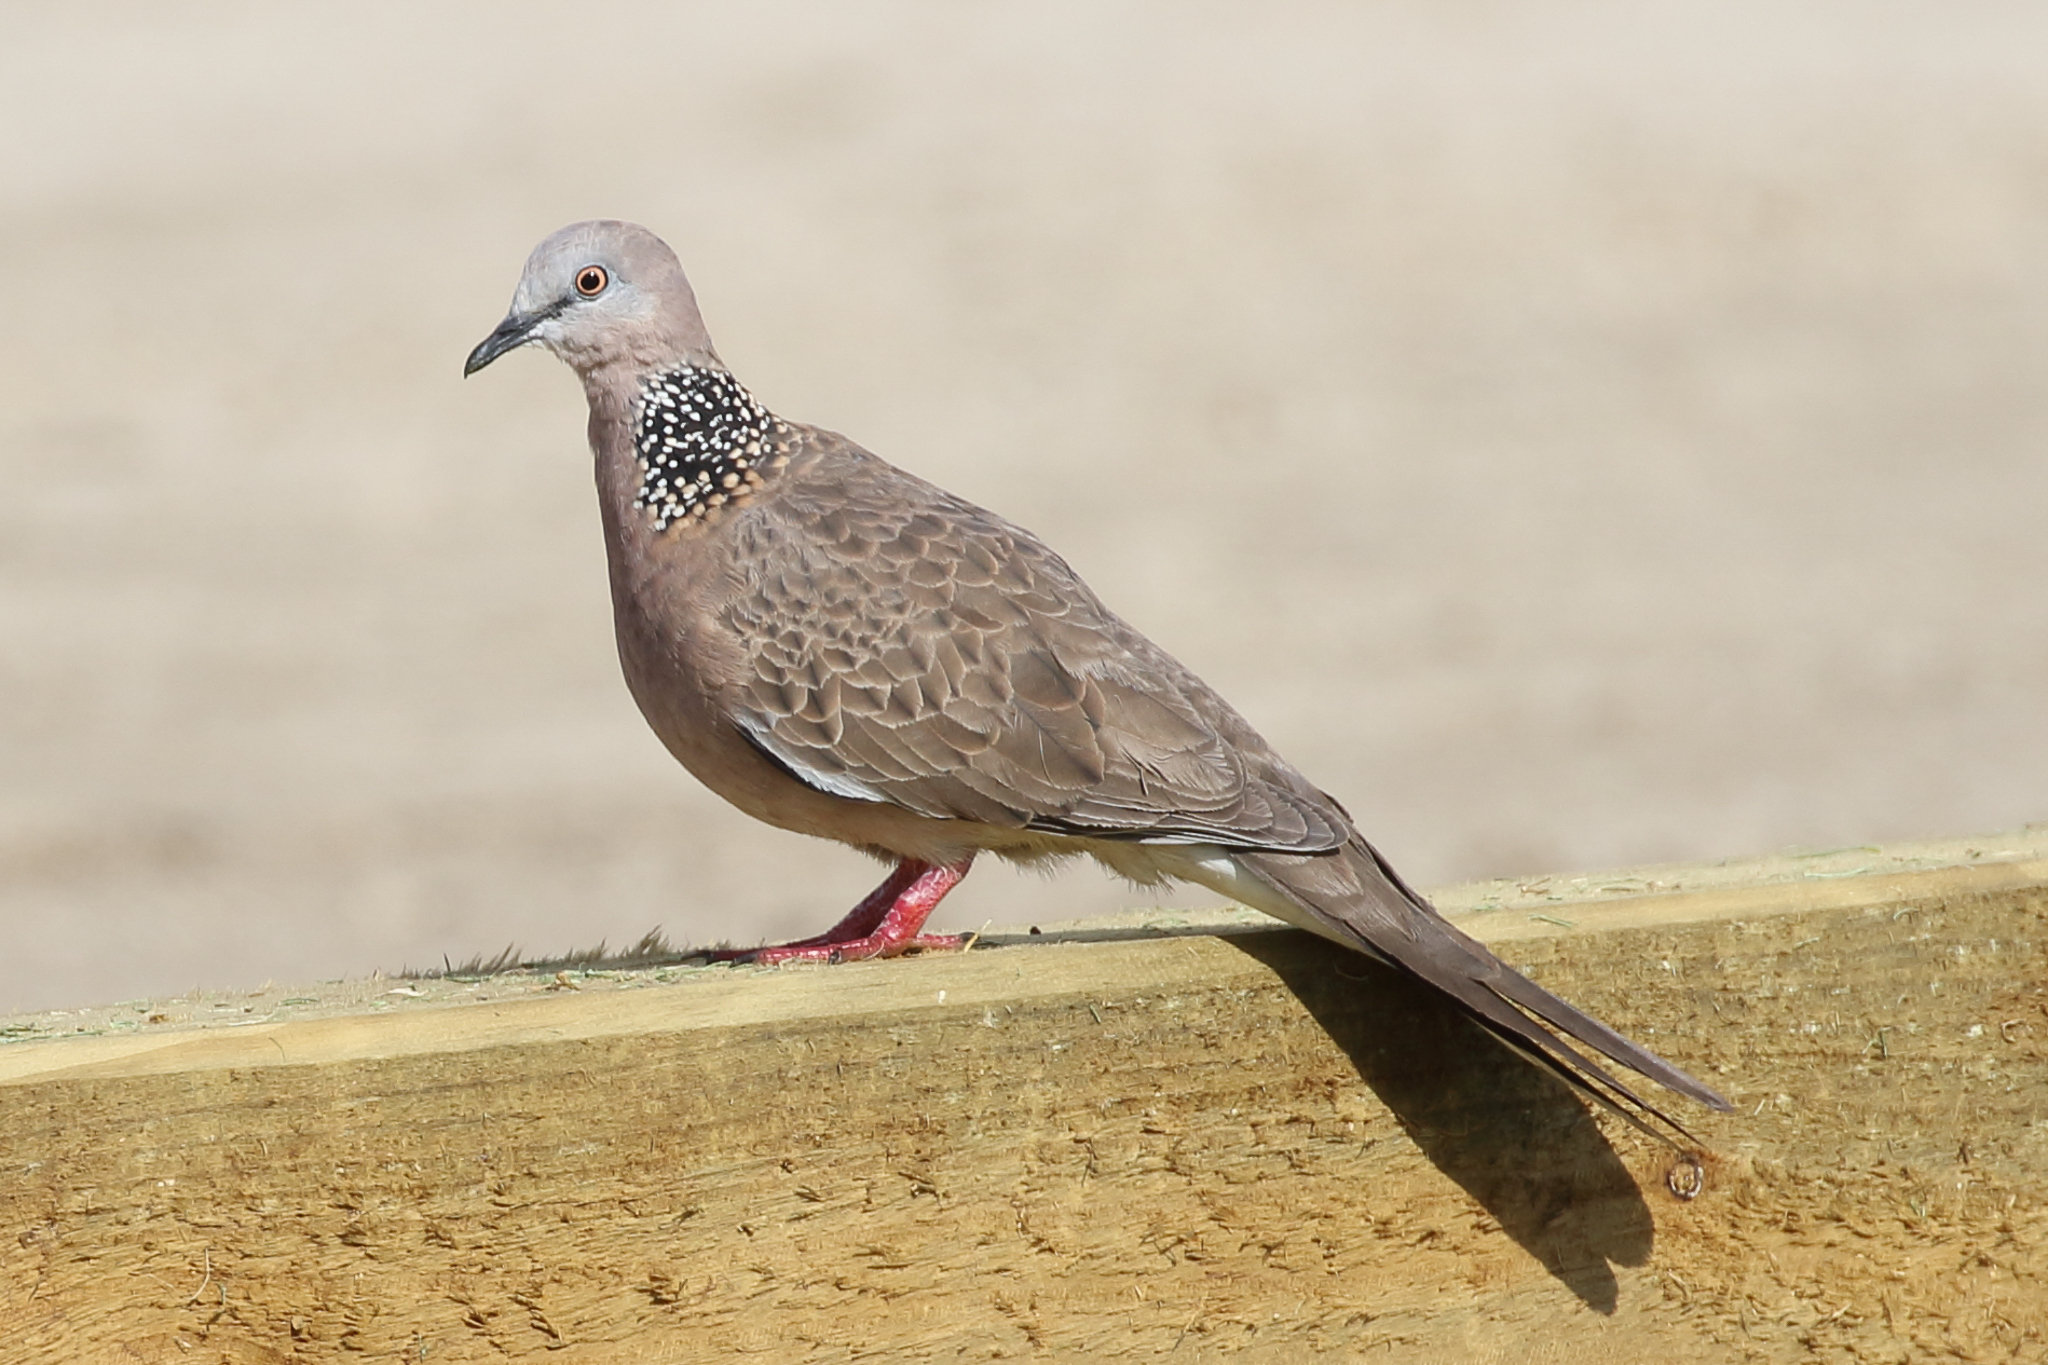 The Spotted Turtle-Dove (32 cm) is an introduced bird seen in our cities and country towns. They feed on the ground on grains, seeds and food scraps.